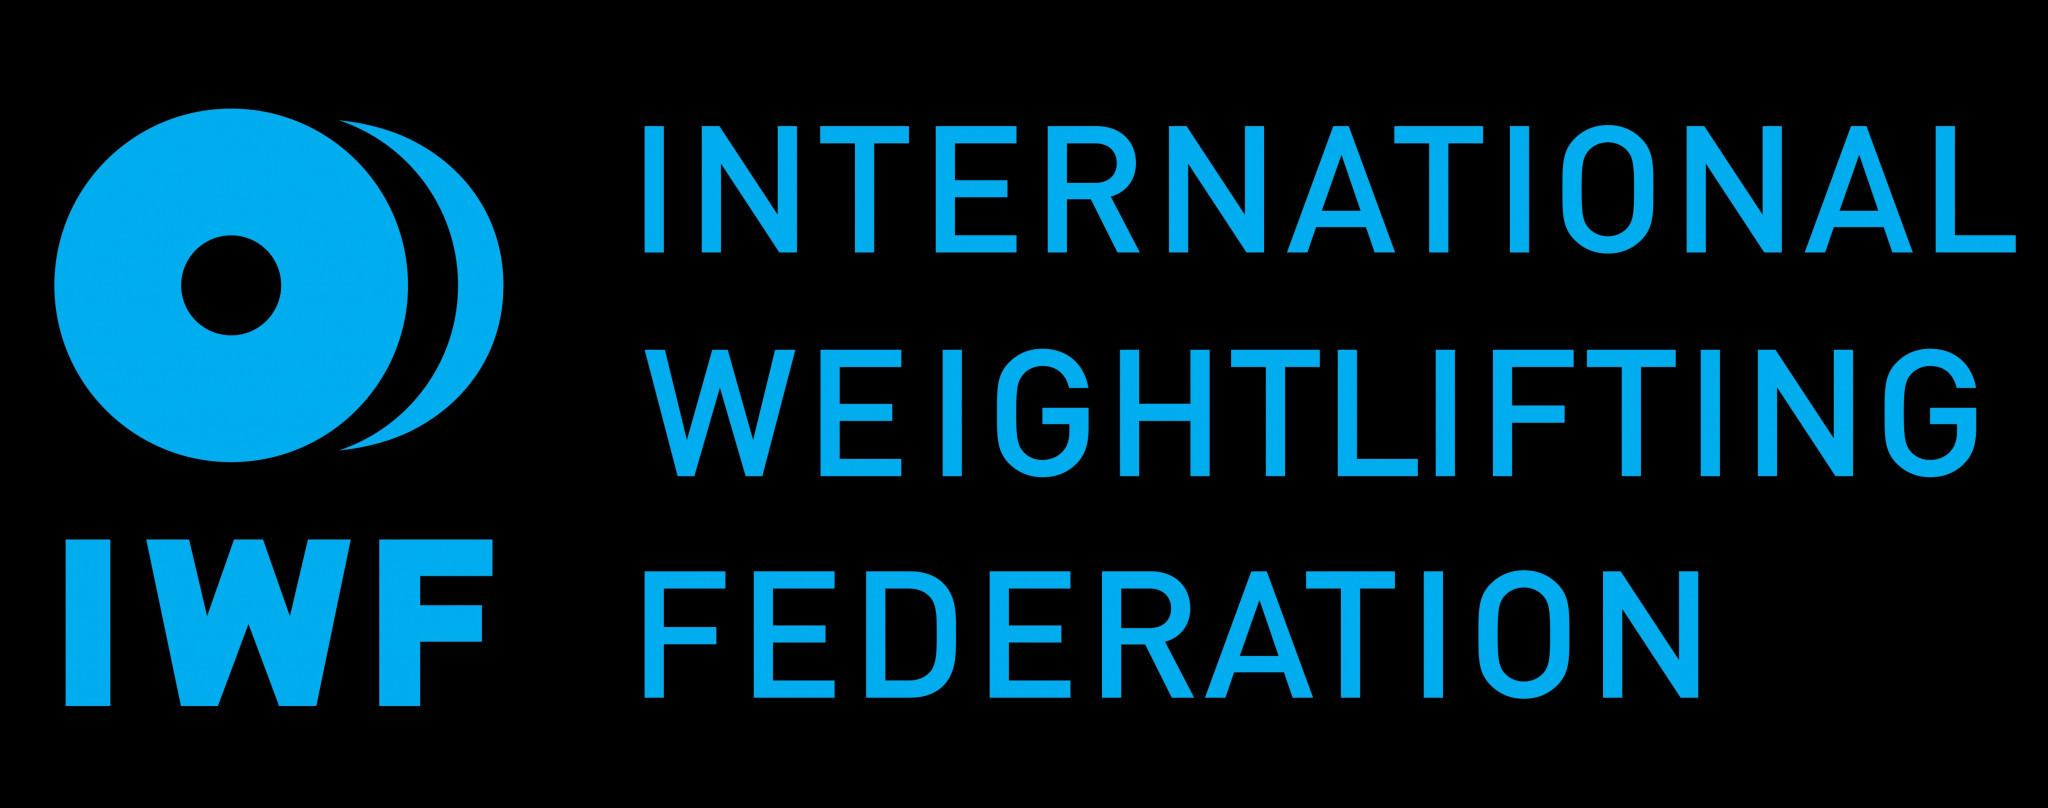 Ursula Papandrea has called for the International Weightlifting Federation to be renamed World Weightlifting as part of her 100 Days of Reform plan ©IWF